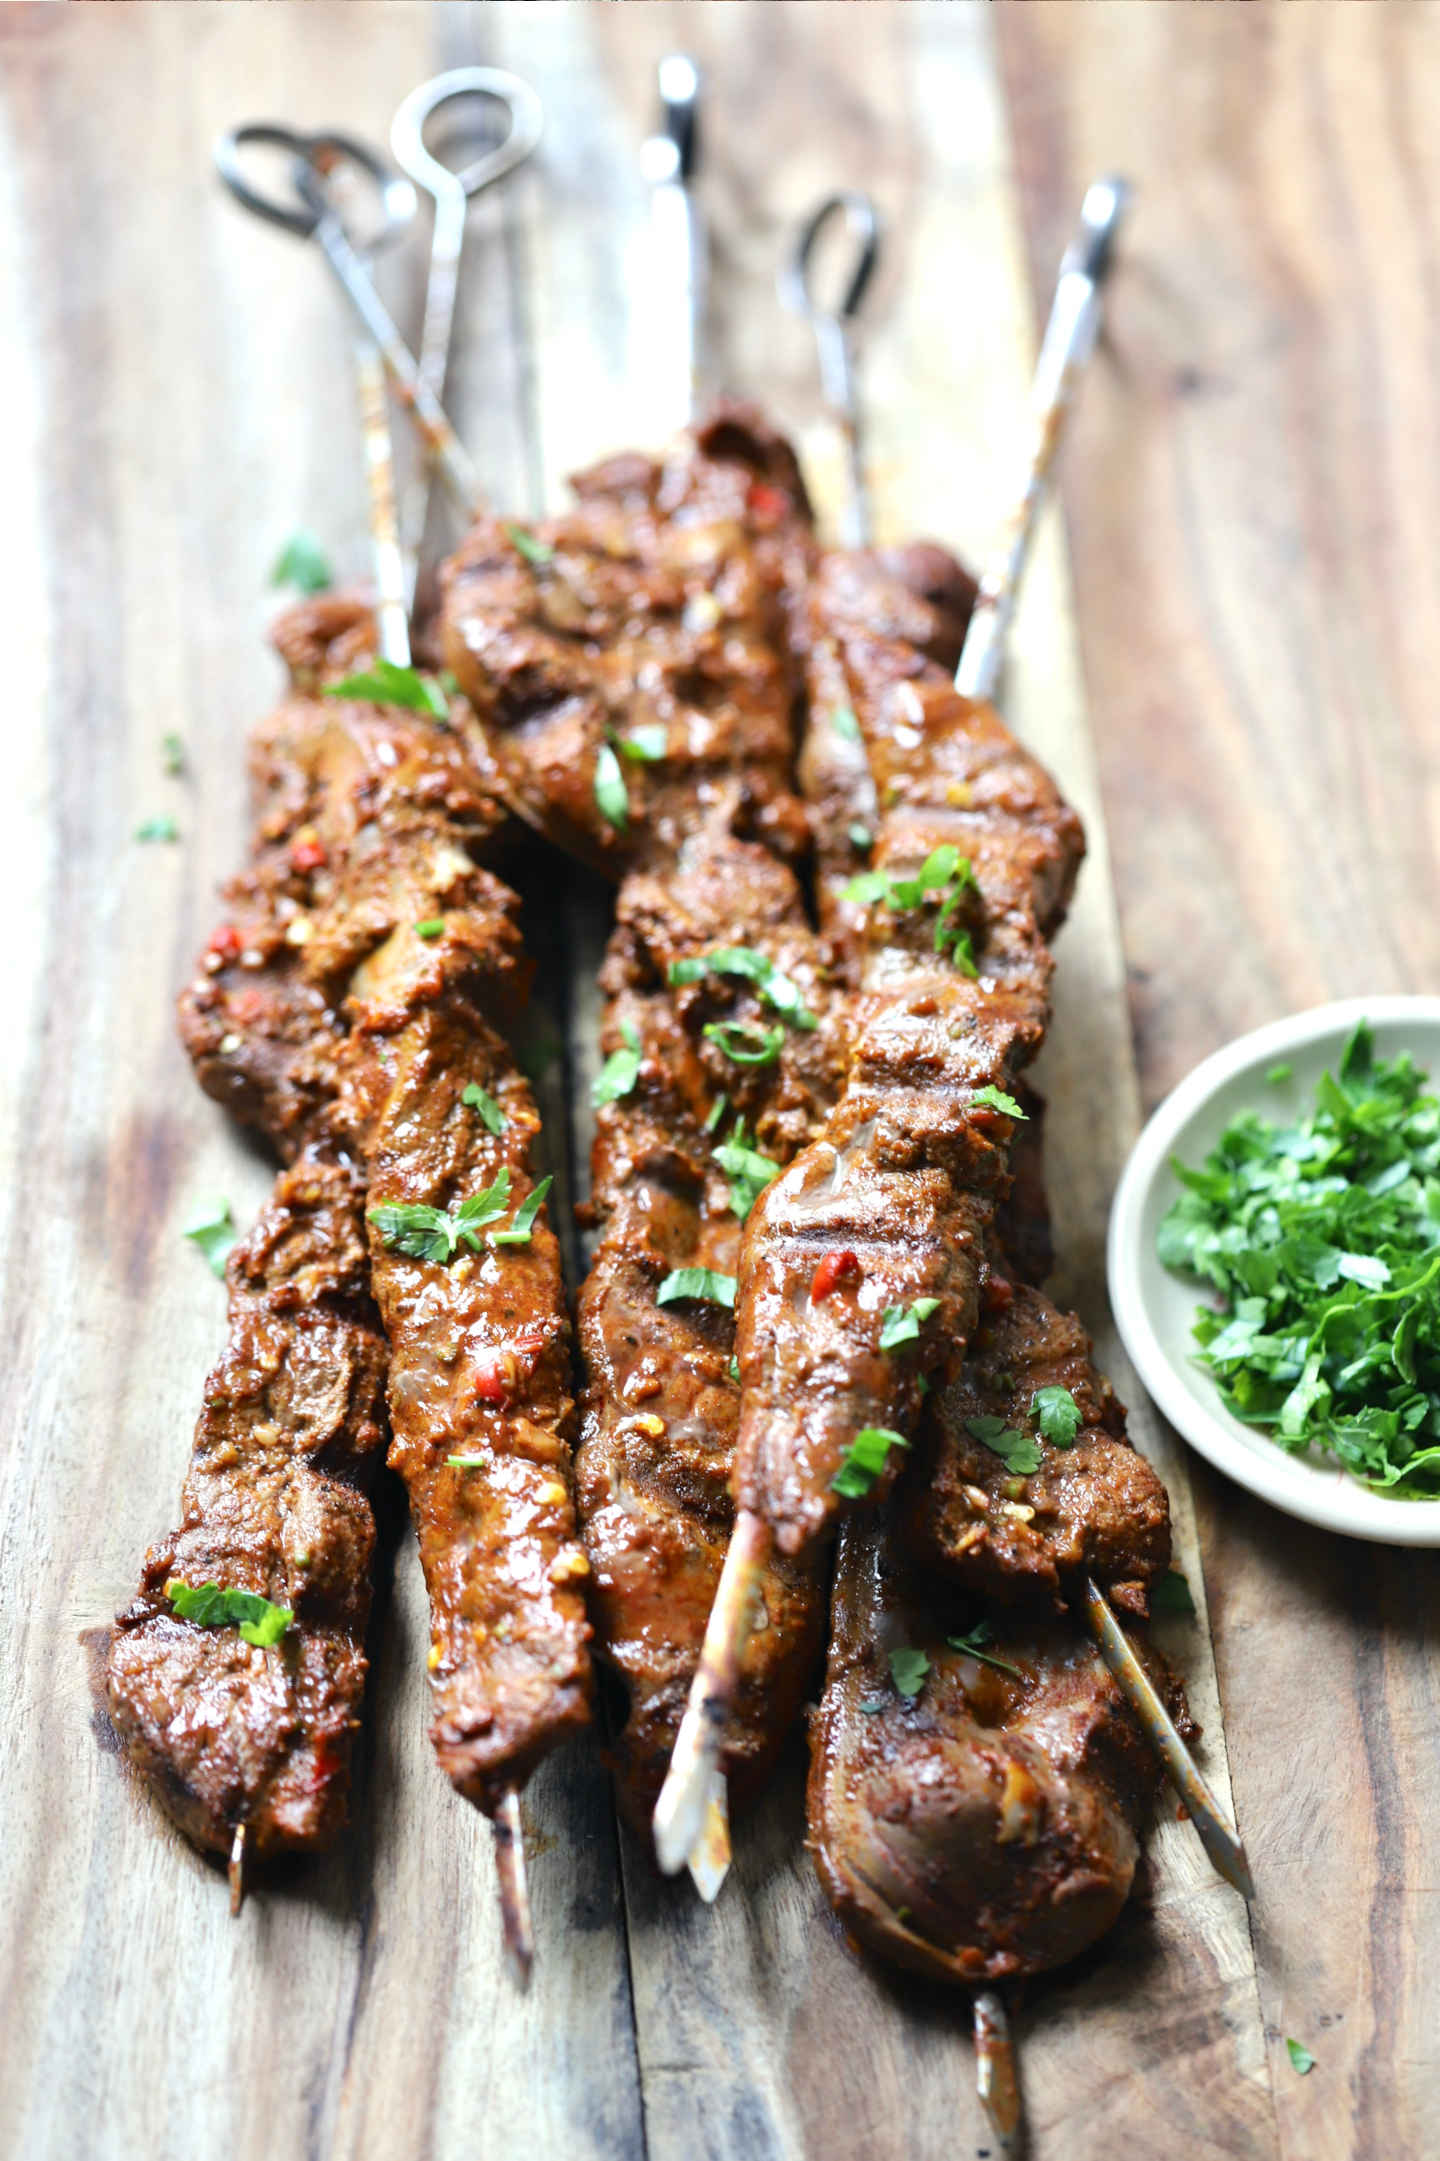 calf liver kabobs garnished with parsley